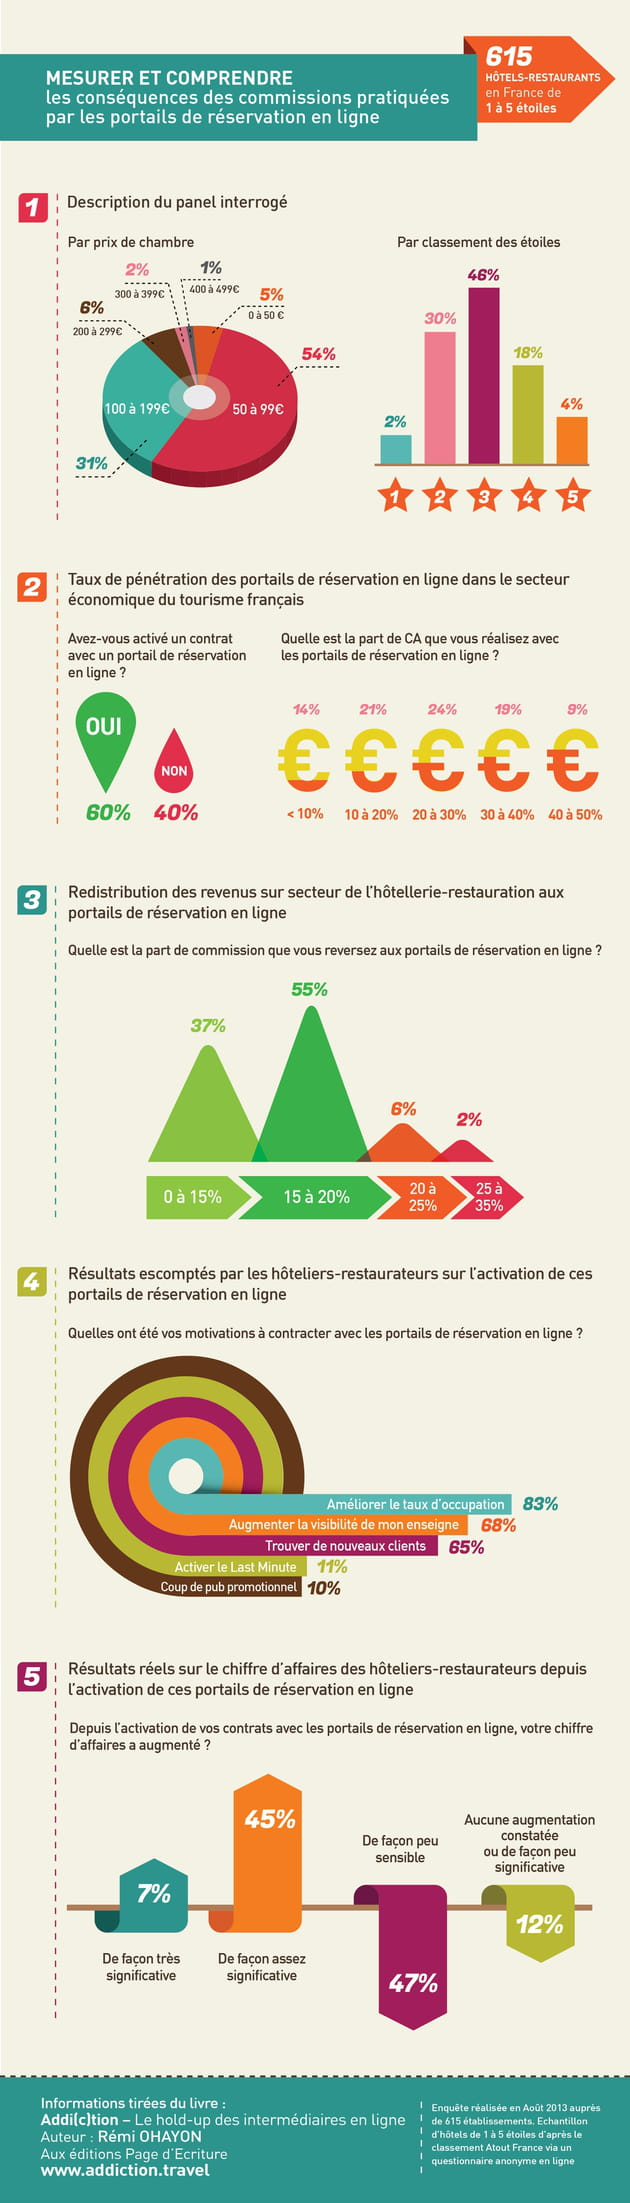 infographie etude 615 hotels remi ohayon